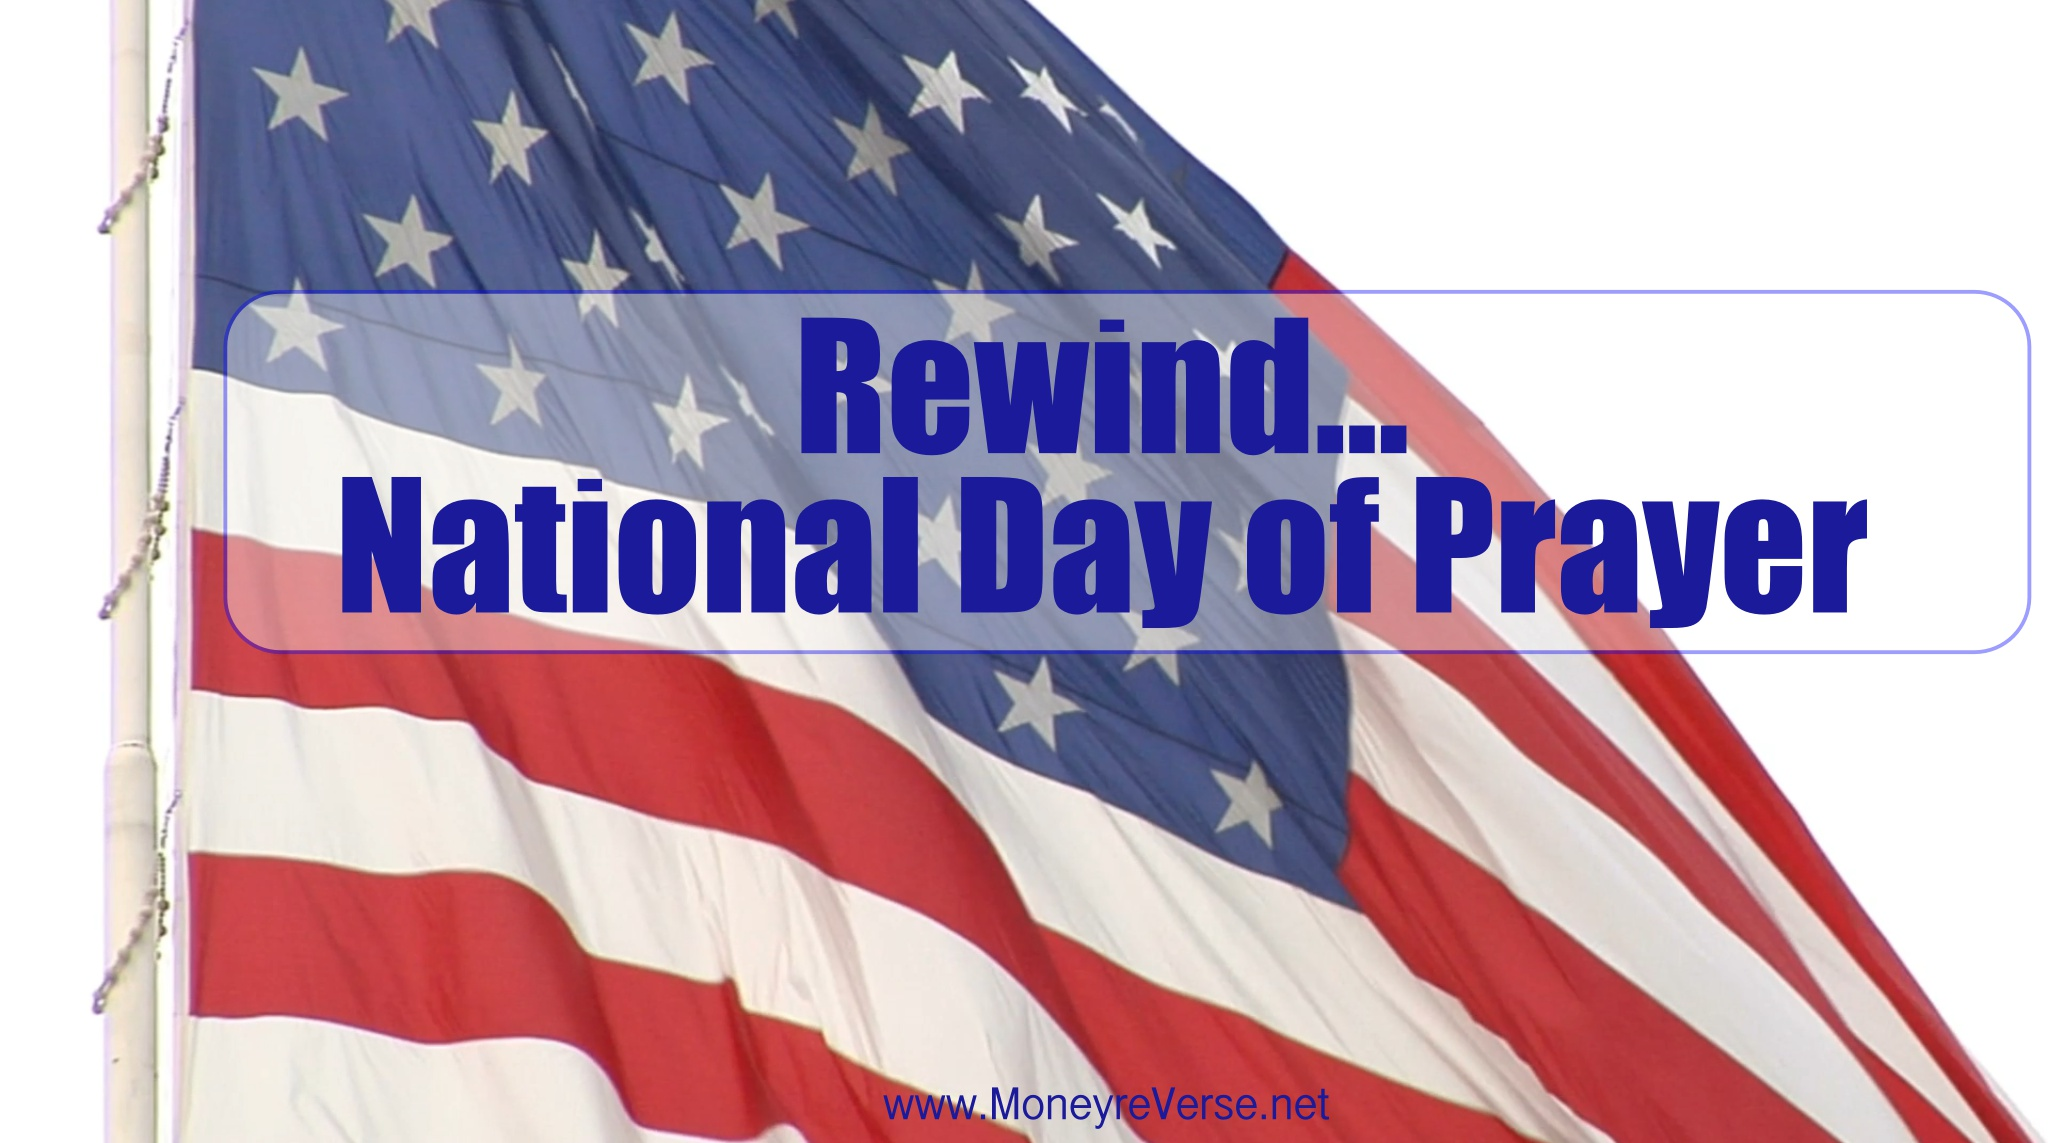 Money reVerse Rewind National Day of Prayer